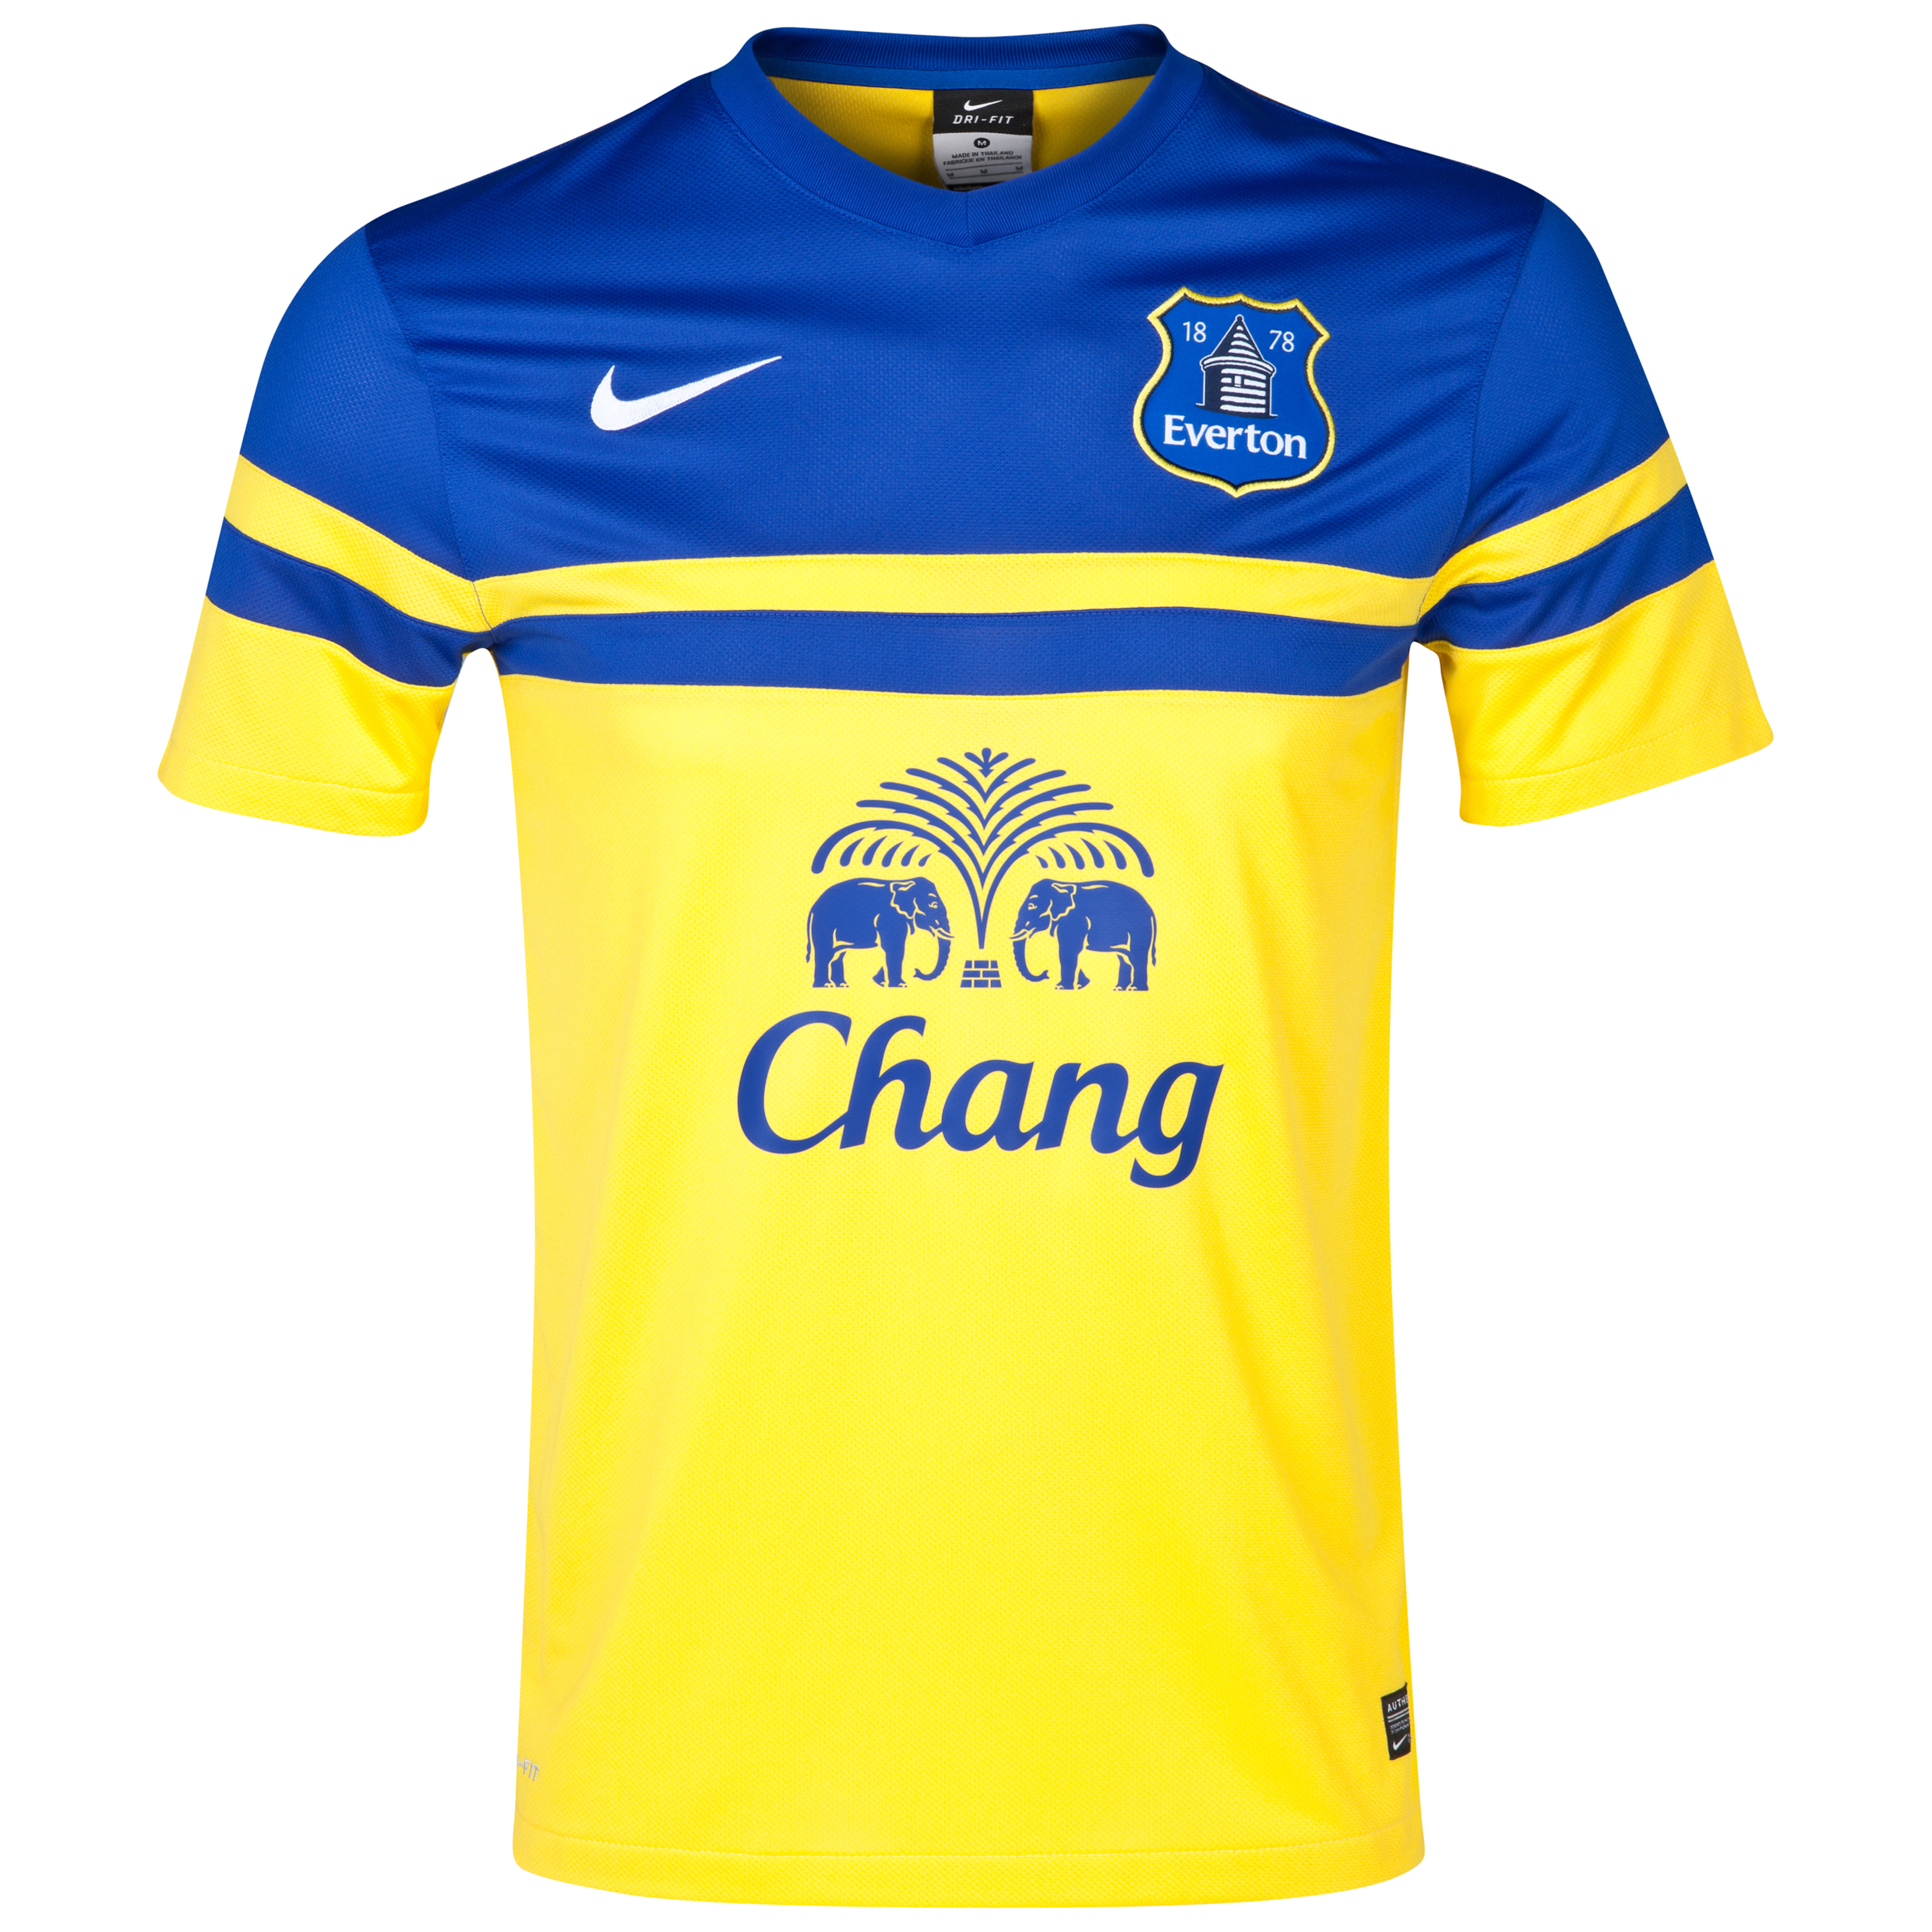 Everton Away Shirt 2013/14 Yellow